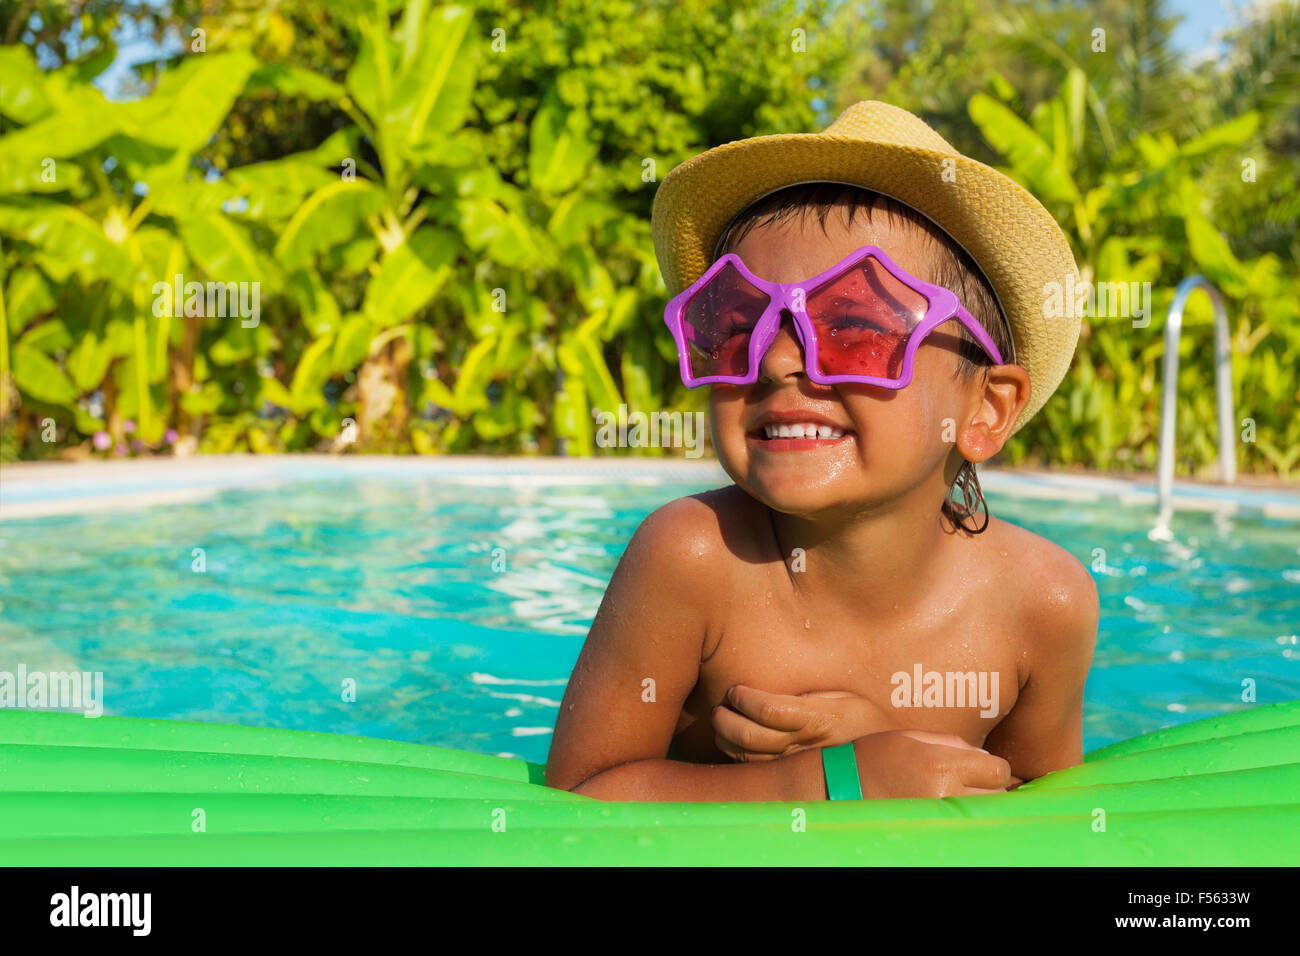 Happy boy in shaped sunglasses on green airbed - Stock Image